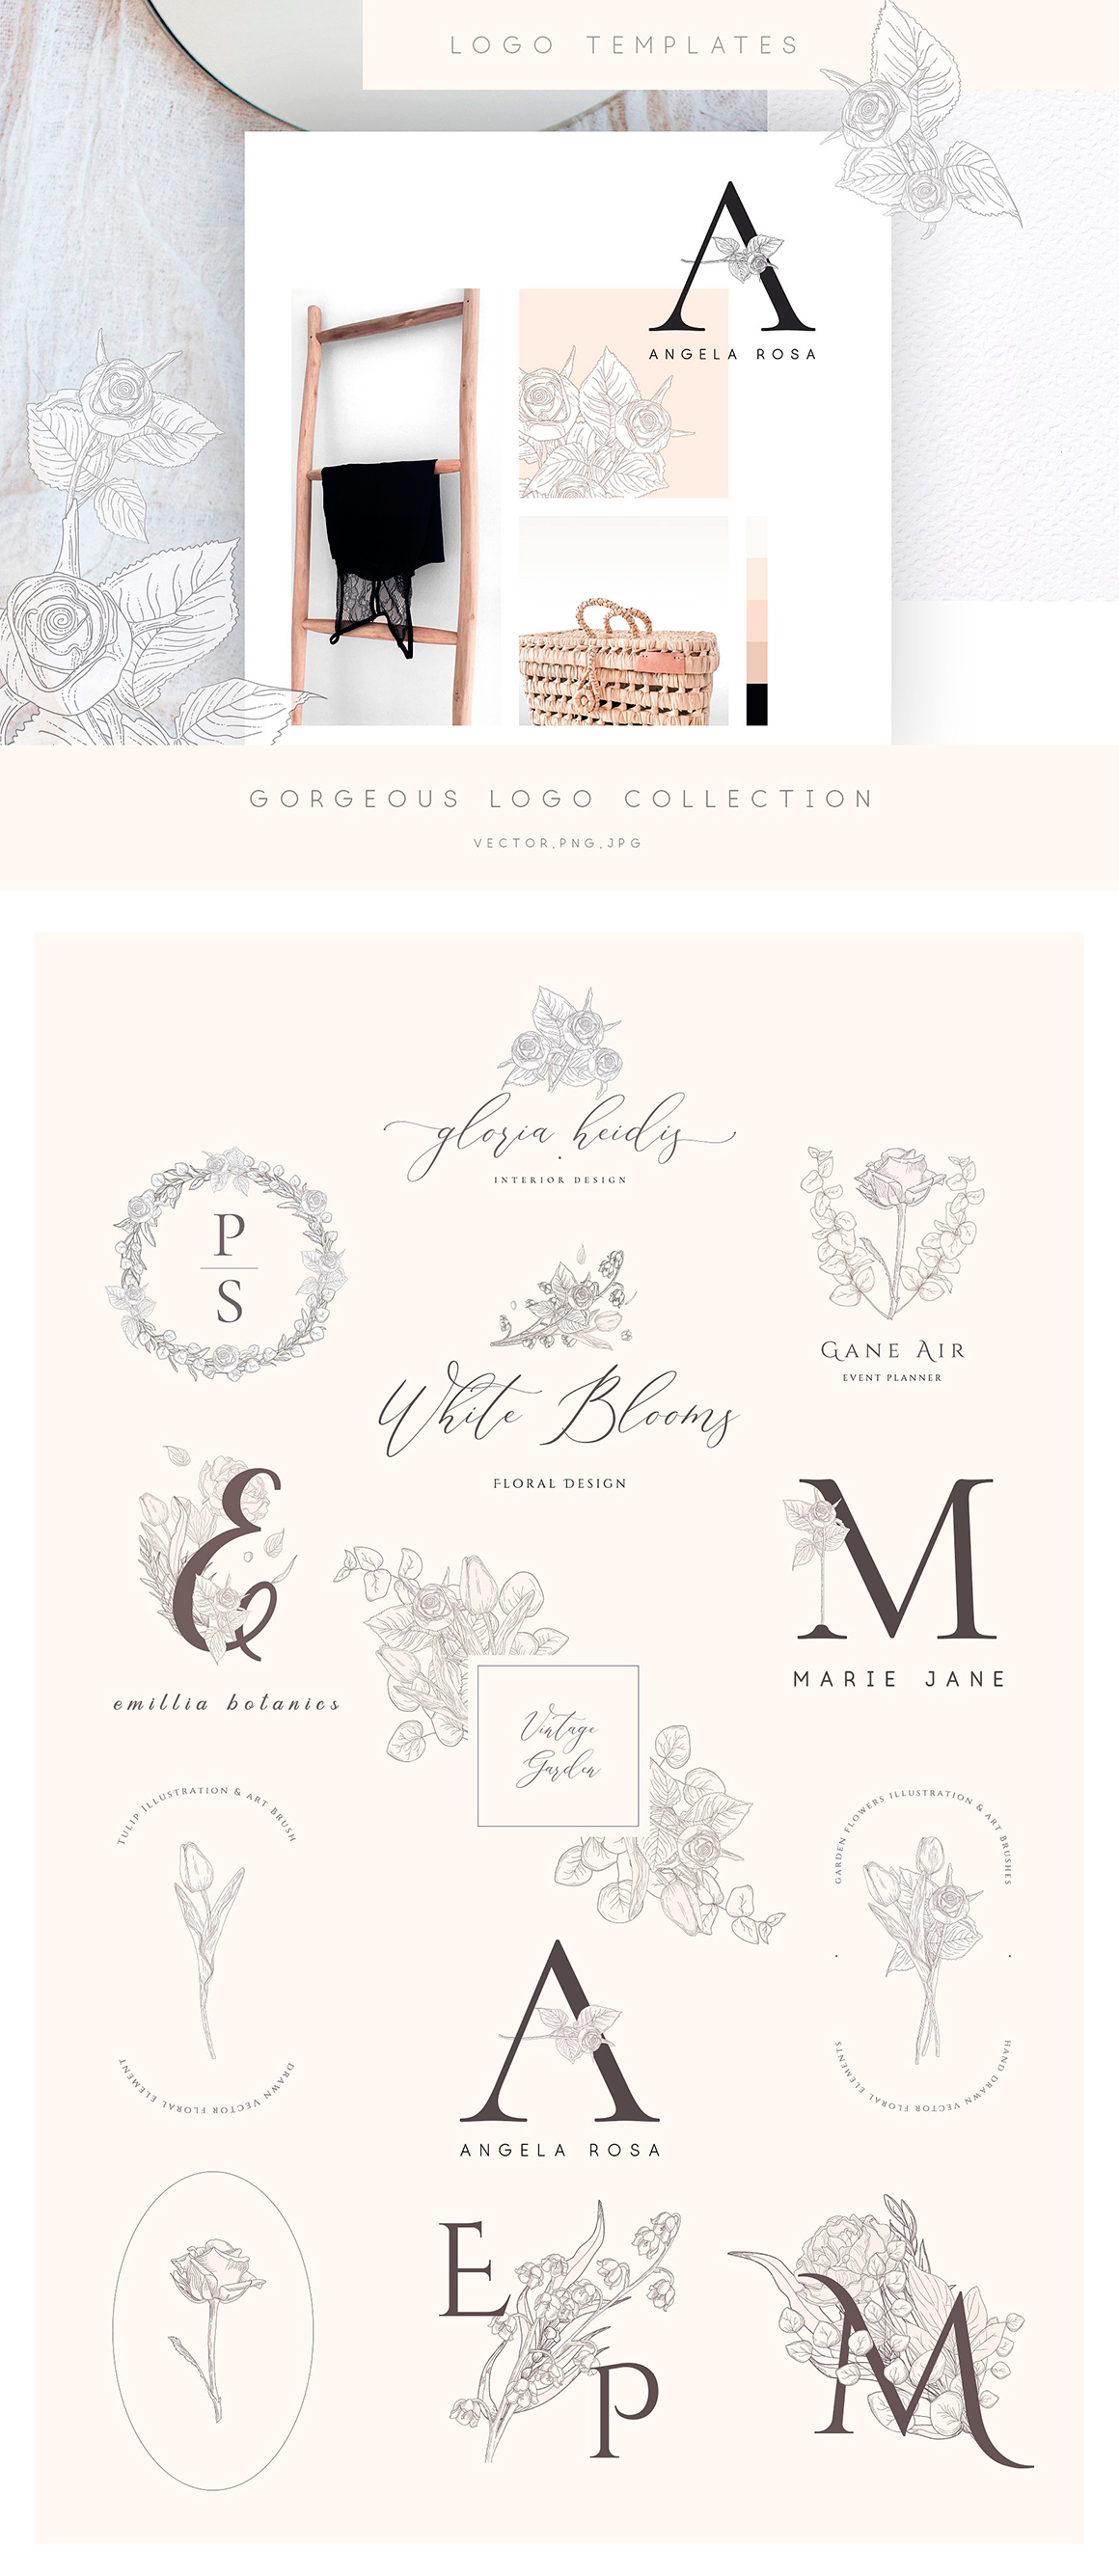 Floral Graphics, Logos, Seamless Patterns